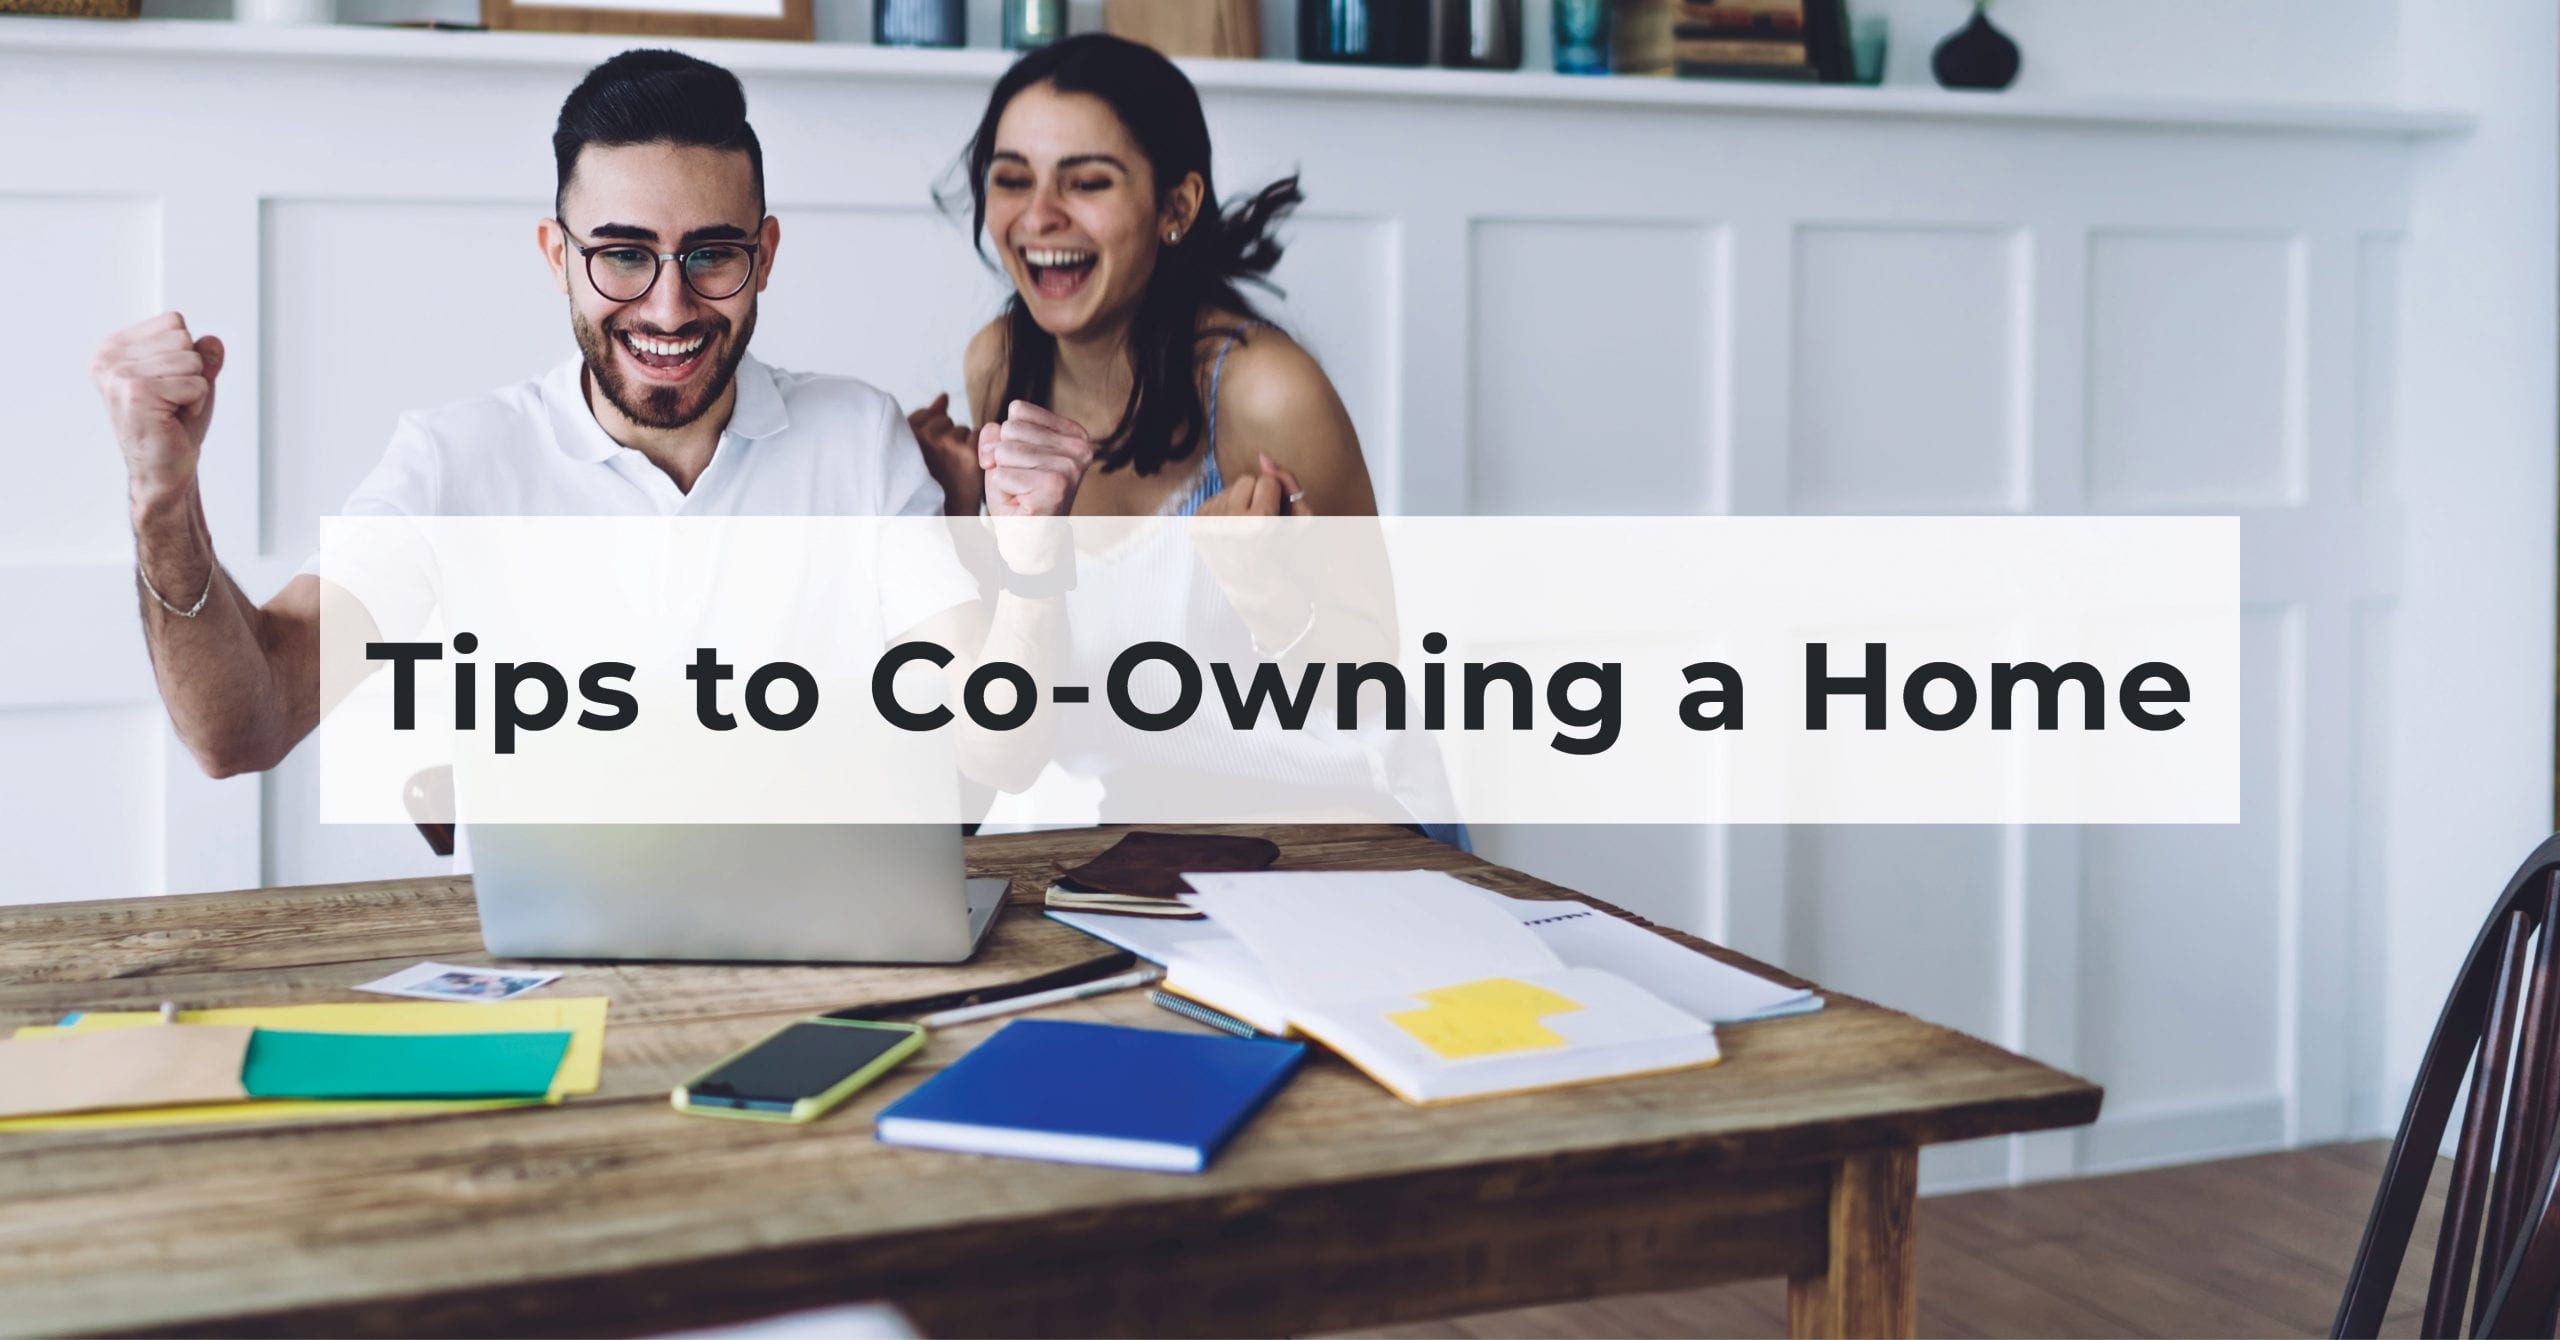 Tips to Co-Owning a Home